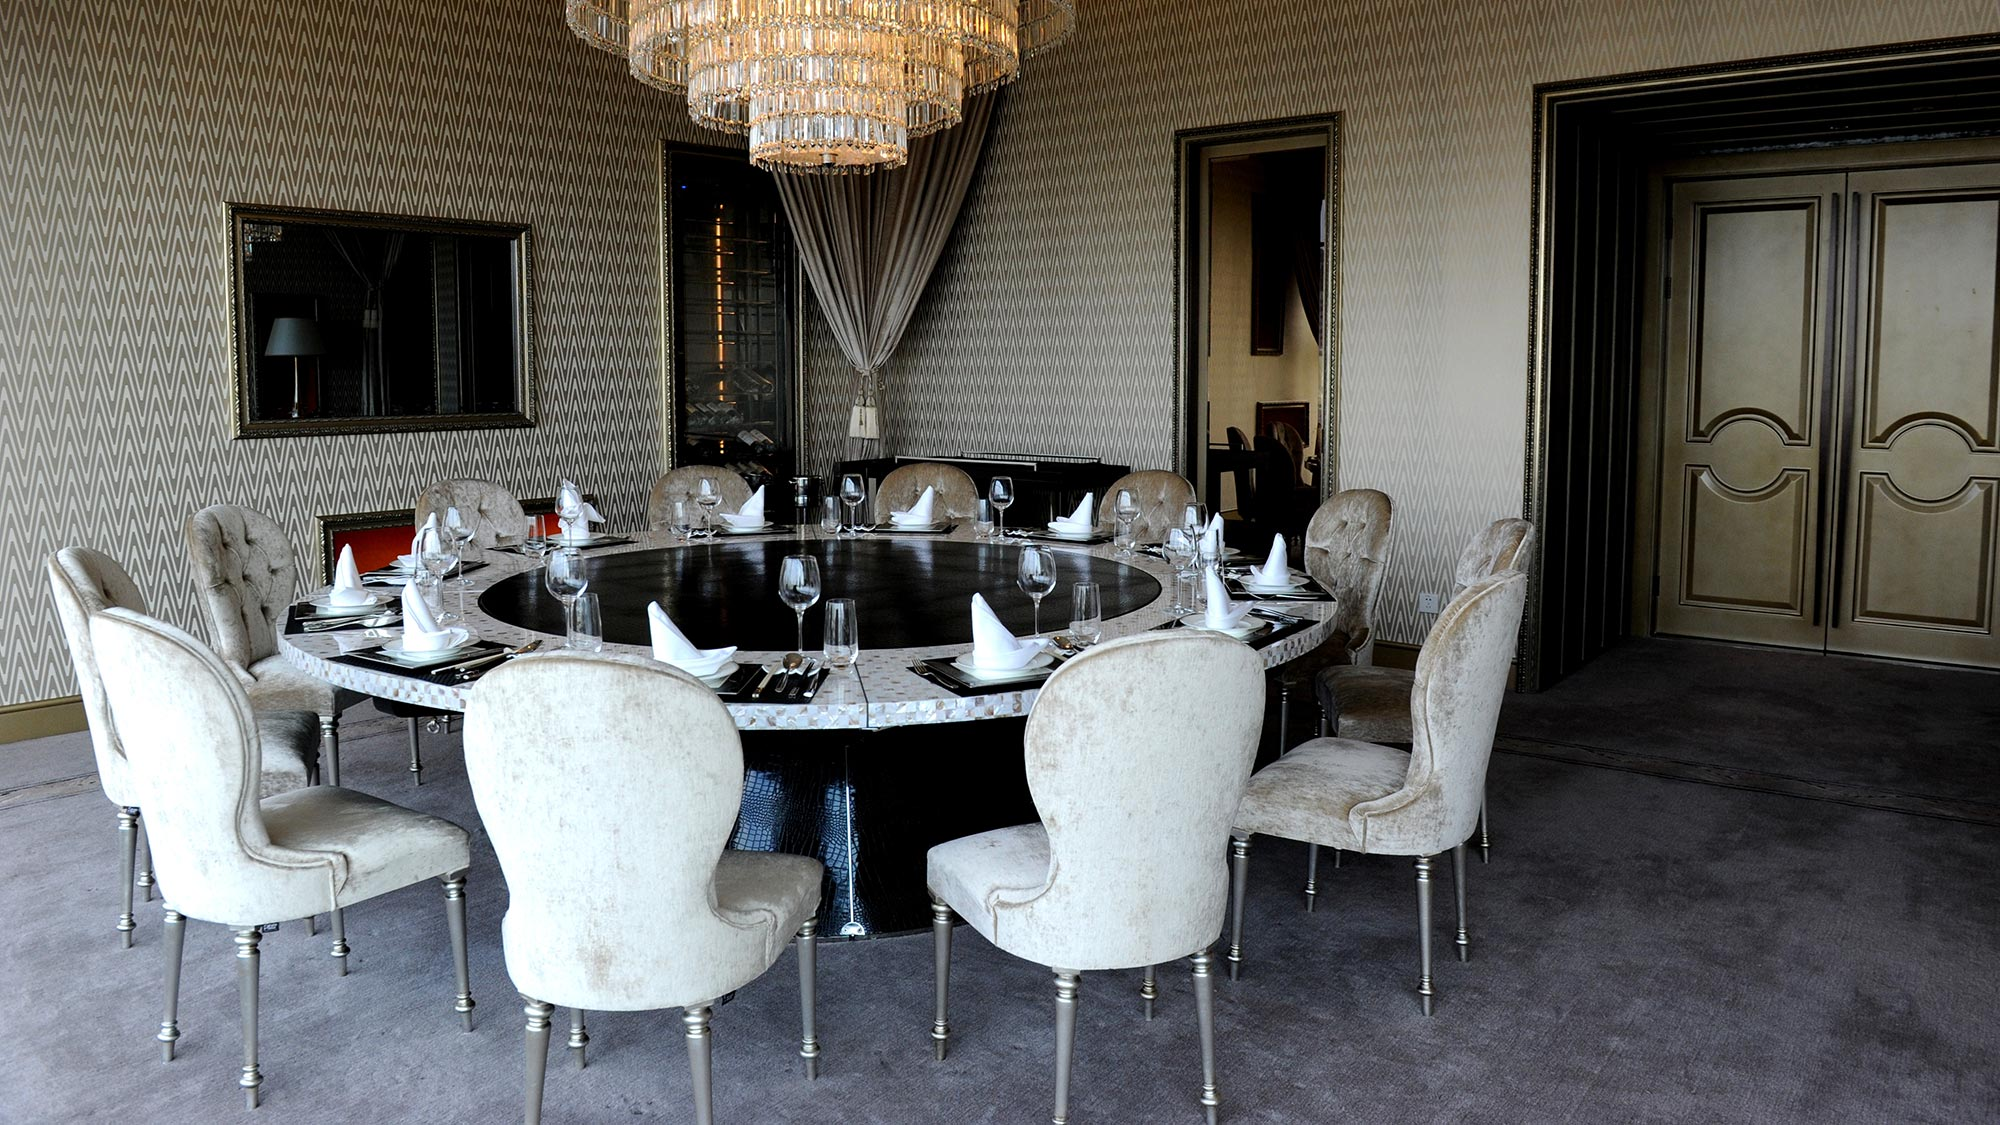 Contemporary Aida chairs by Sevensedie at the Imperial Seal restaurant in Shanghai